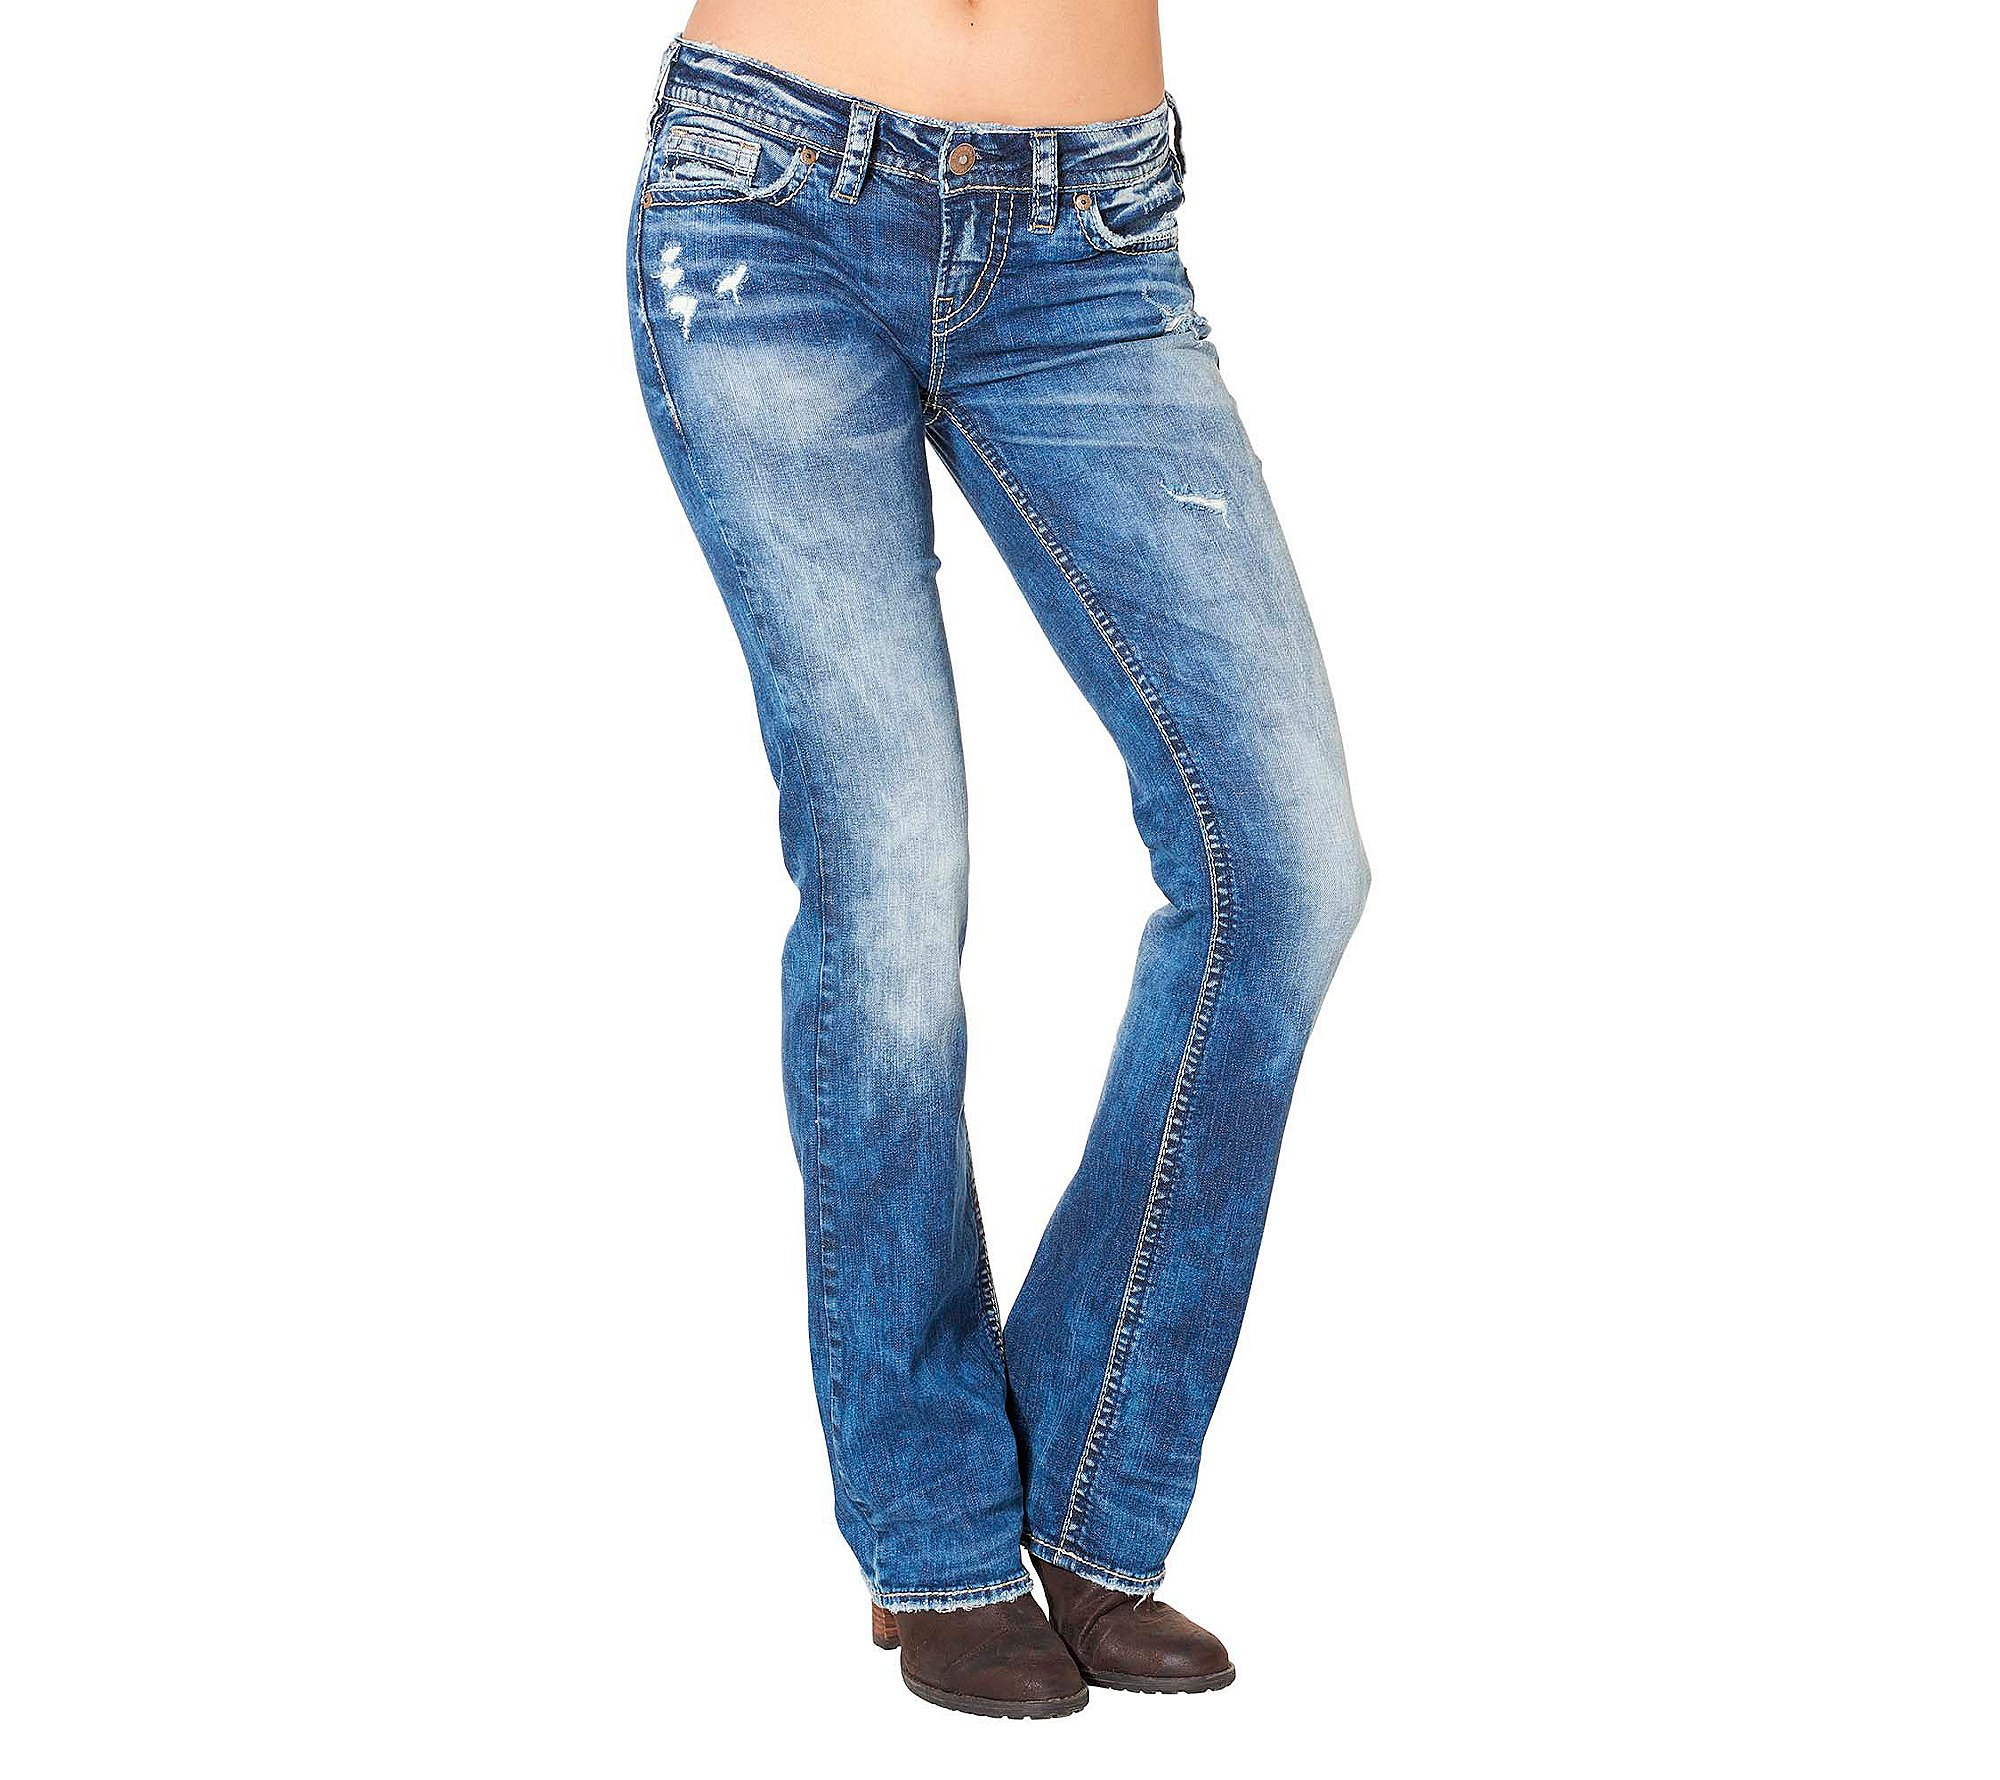 Silver Jeans Co. Aiko Mid Boot Jeans 26